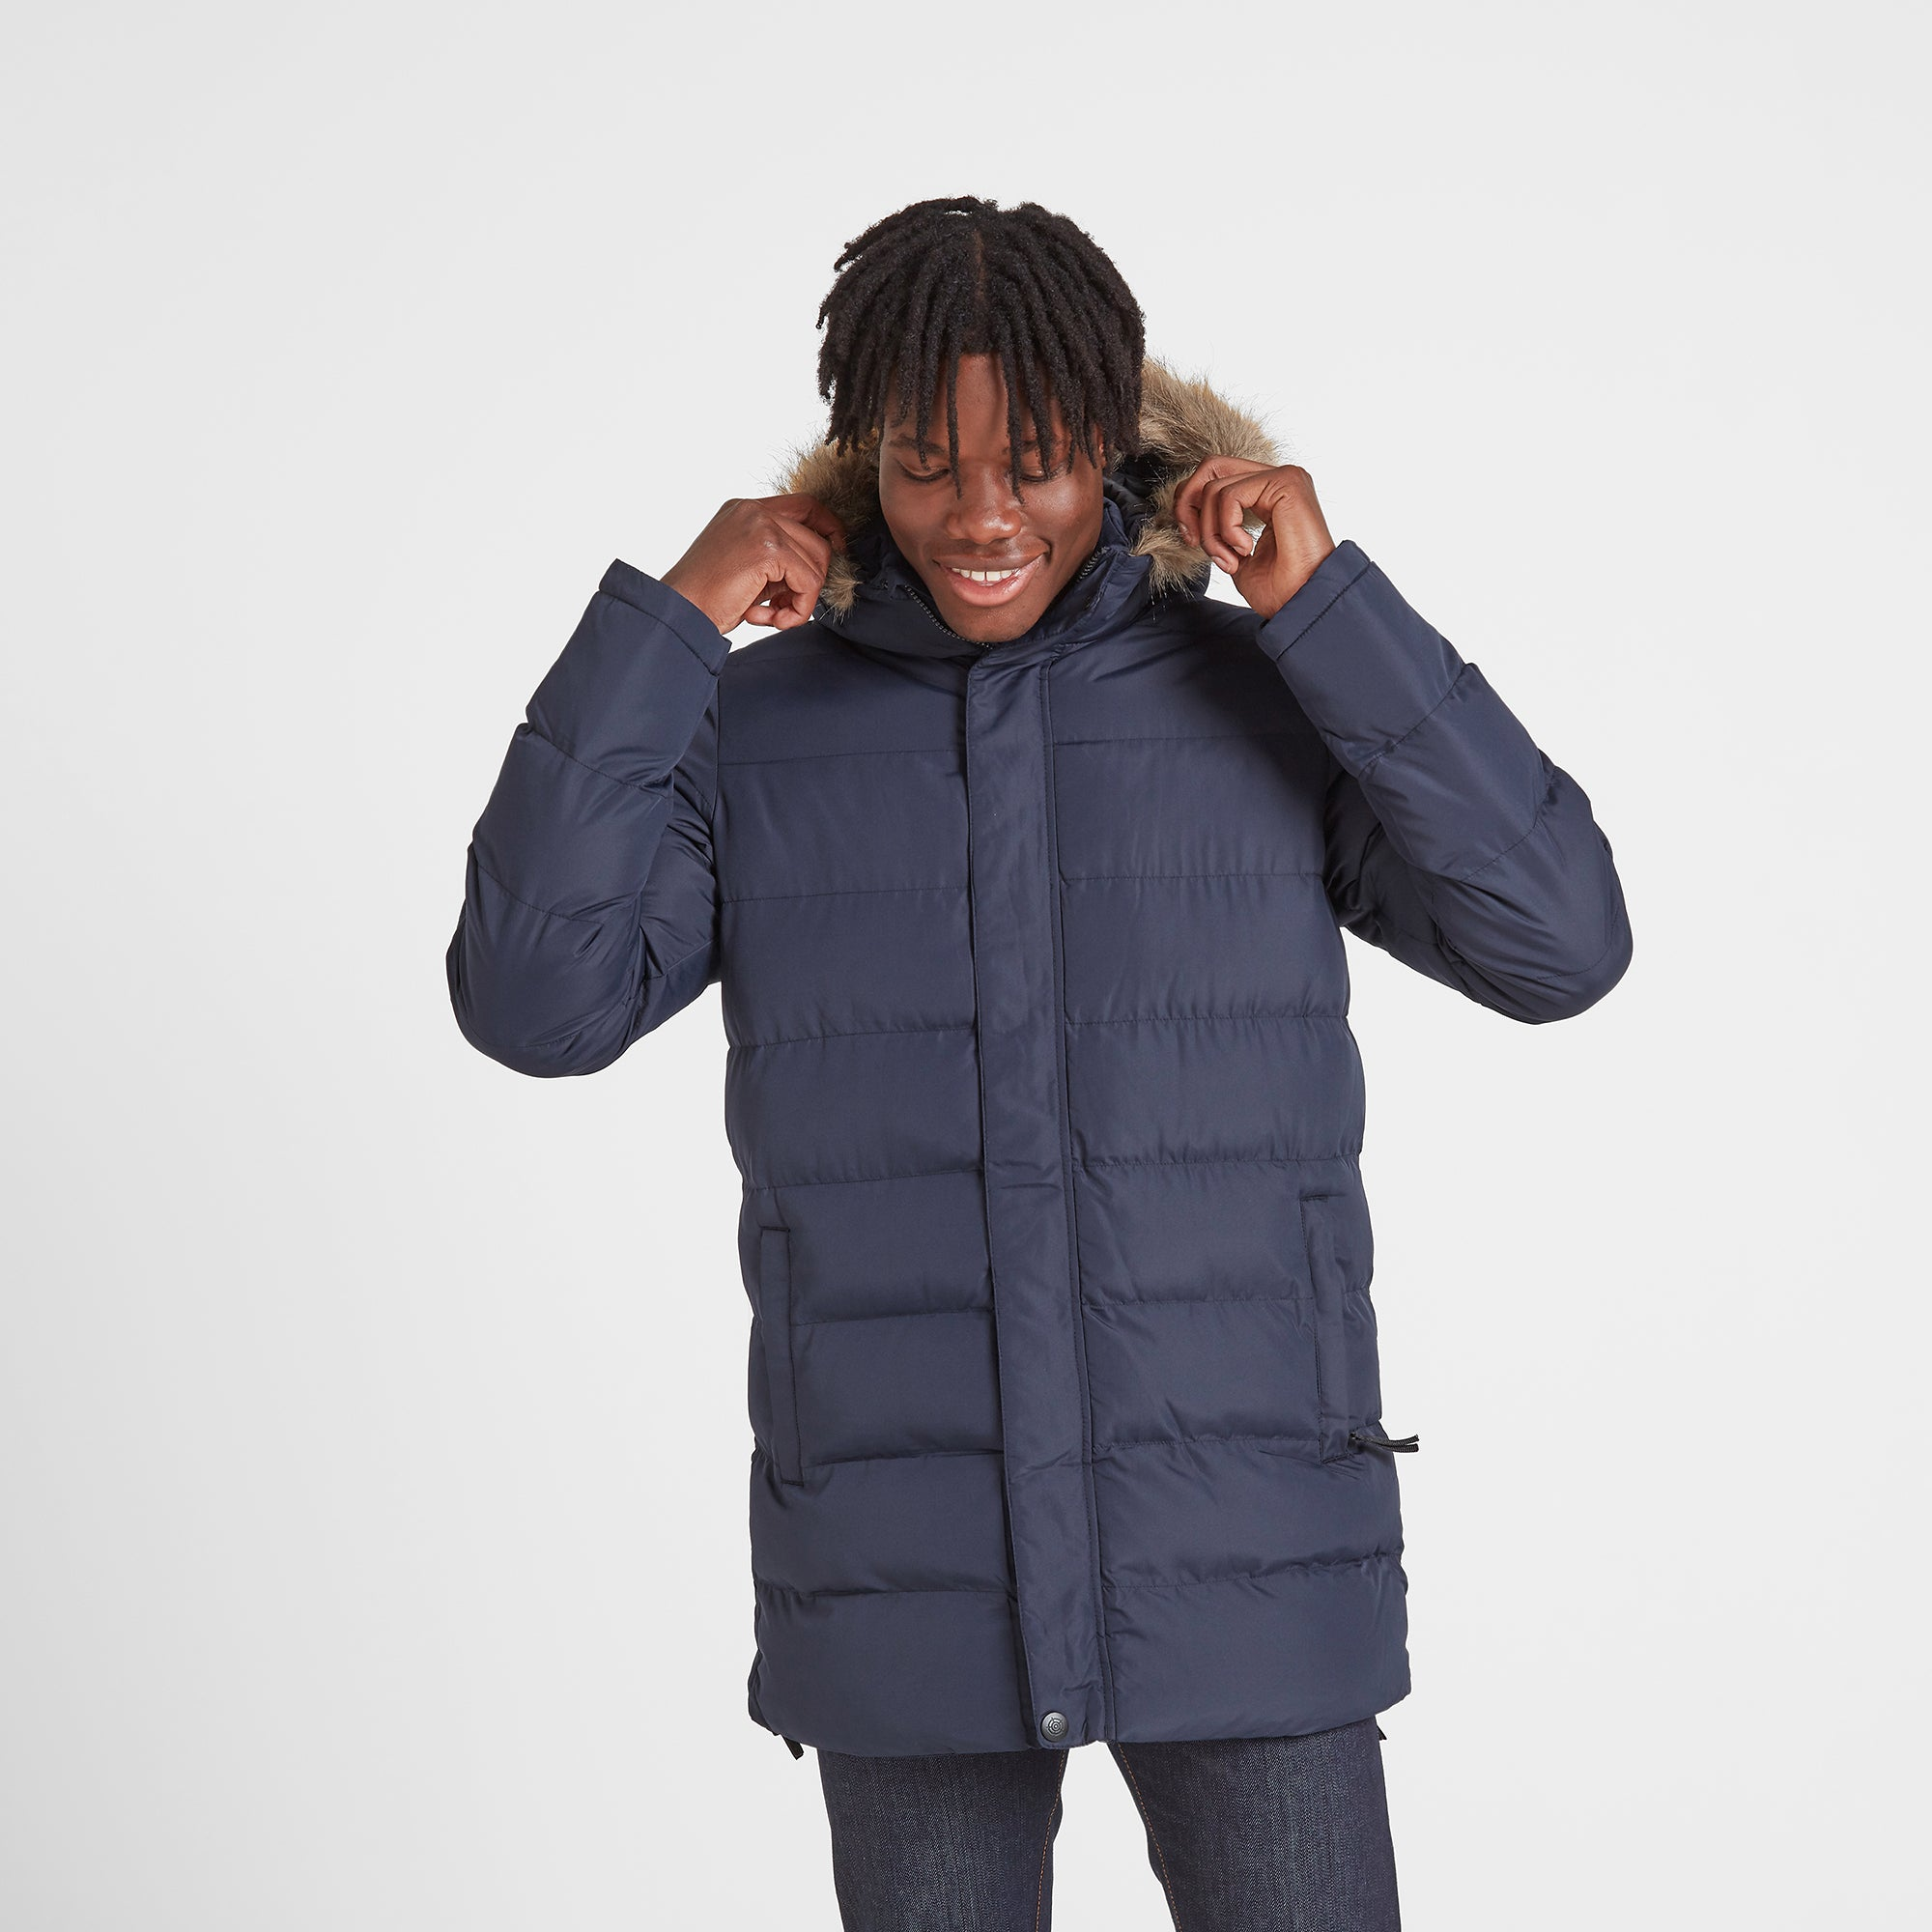 Caliber Mens Long Insulated Jacket - Navy